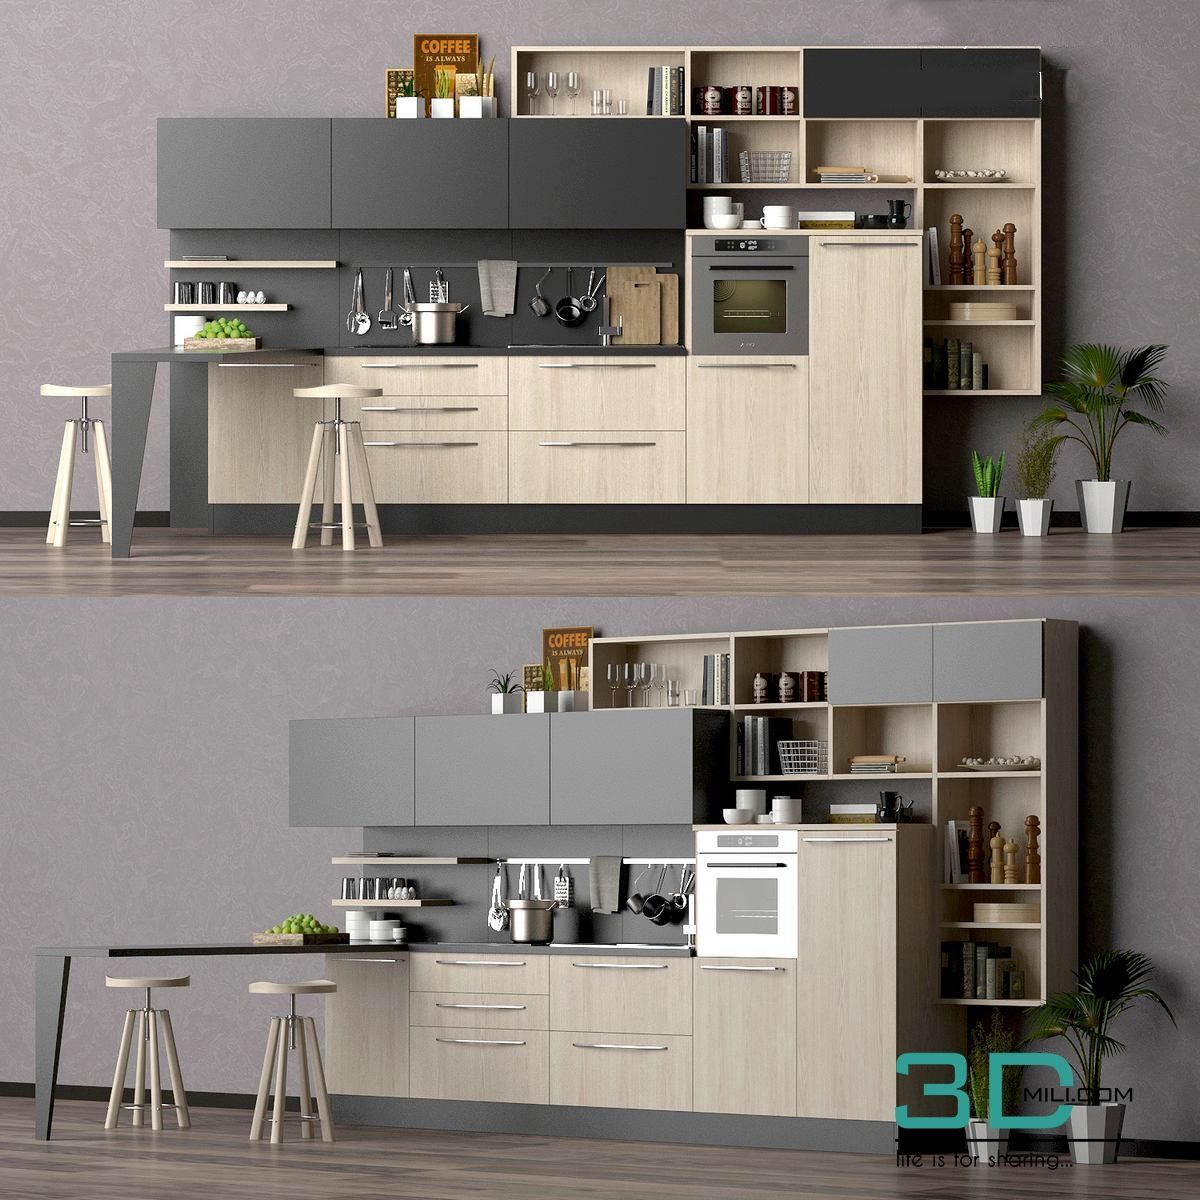 01 kitchen room 3d mili download 3d model free 3d models 3d rh pinterest ca